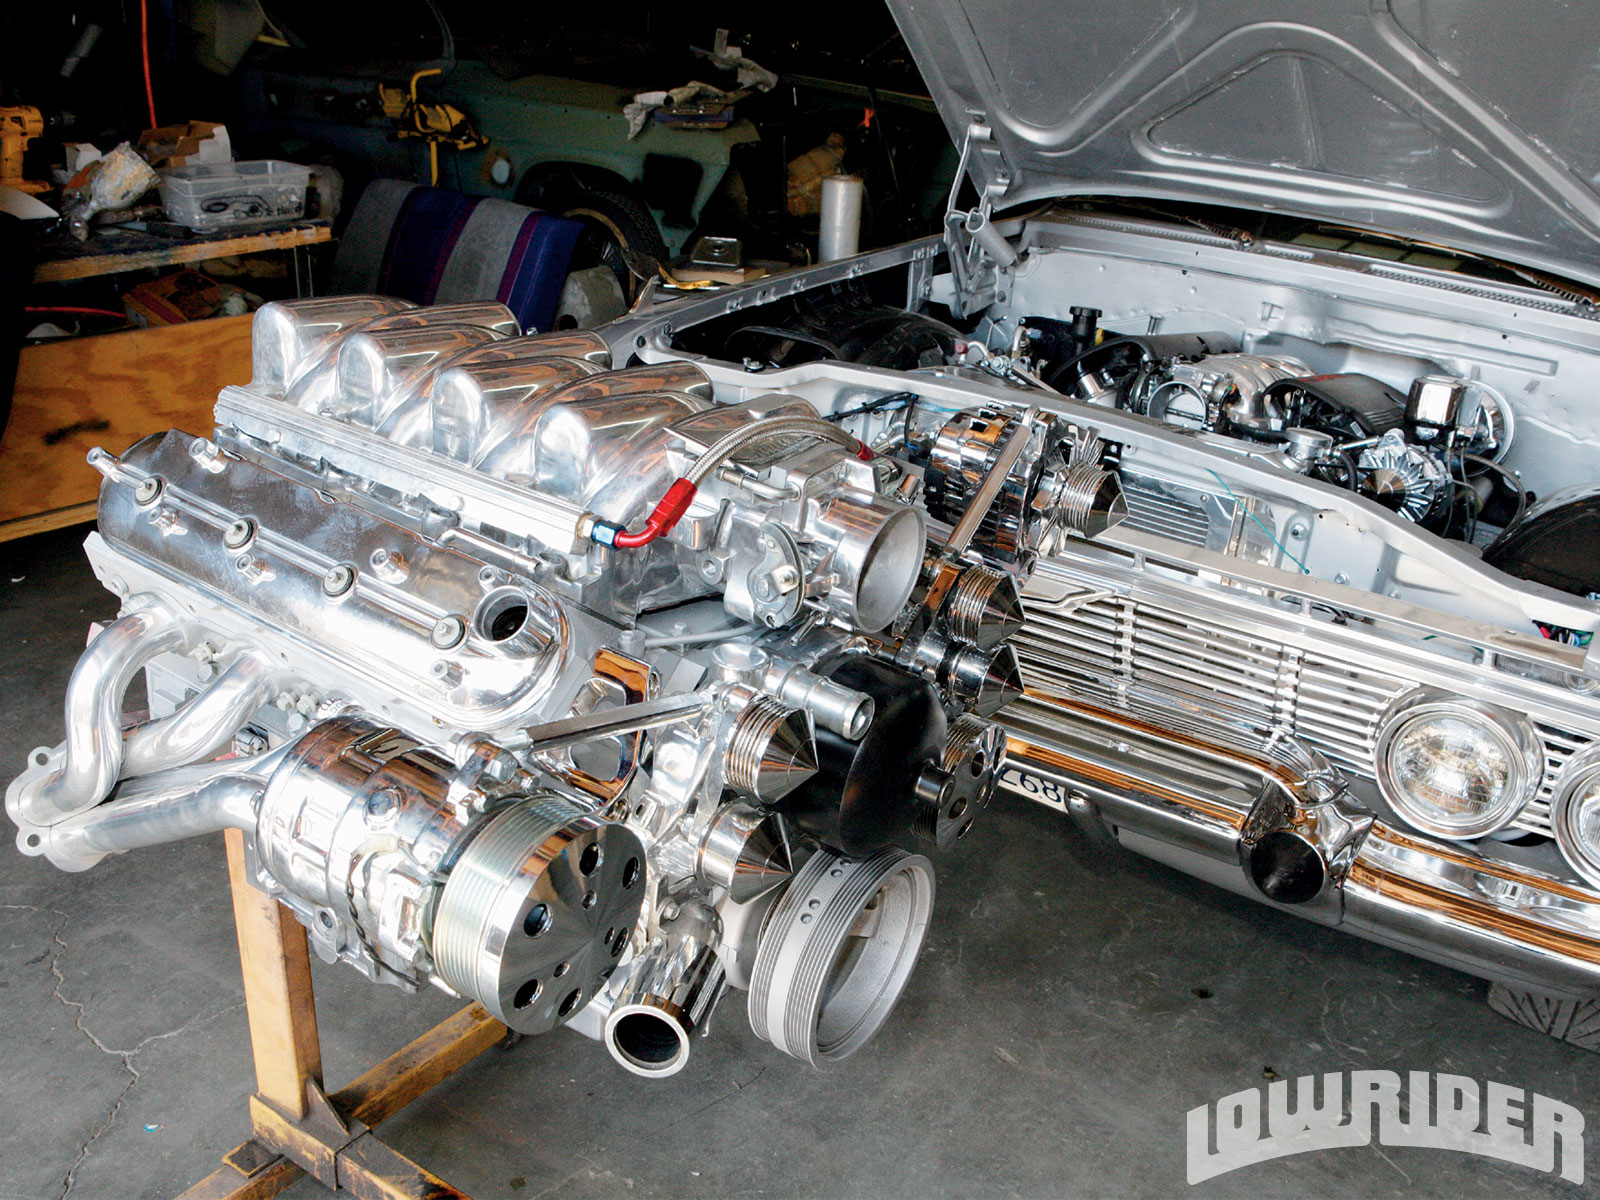 General Motors Ls Series Engine Build Ultimate Hydraulics 5 3 Vortec Crate With Wiring Harness Free 31